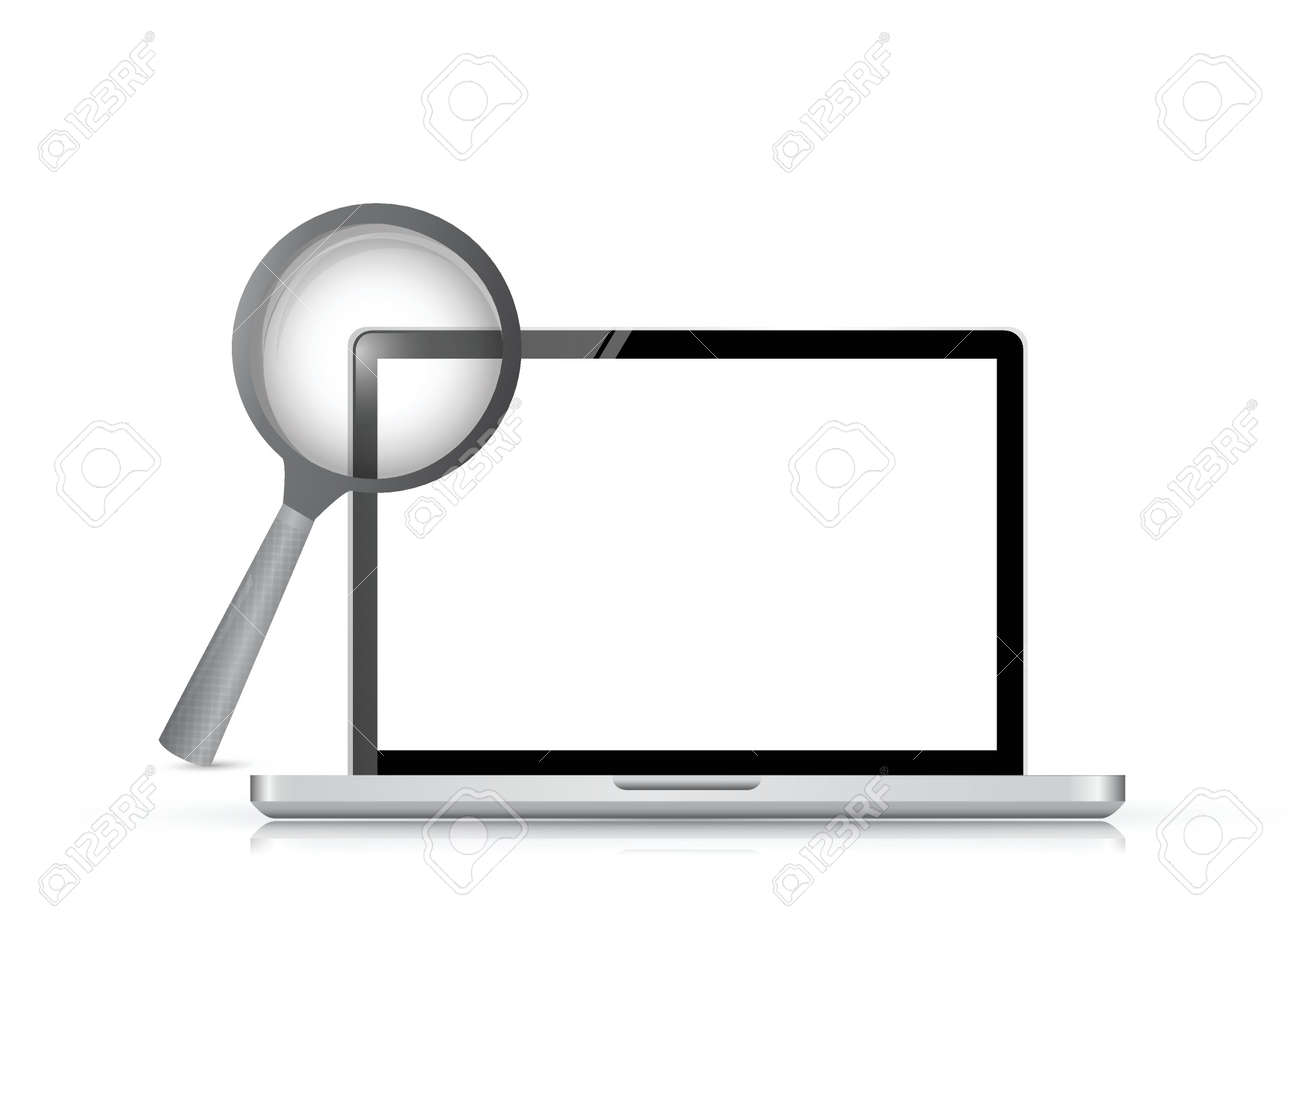 computer laptop under research illustration design over a white background Stock Vector - 24928635